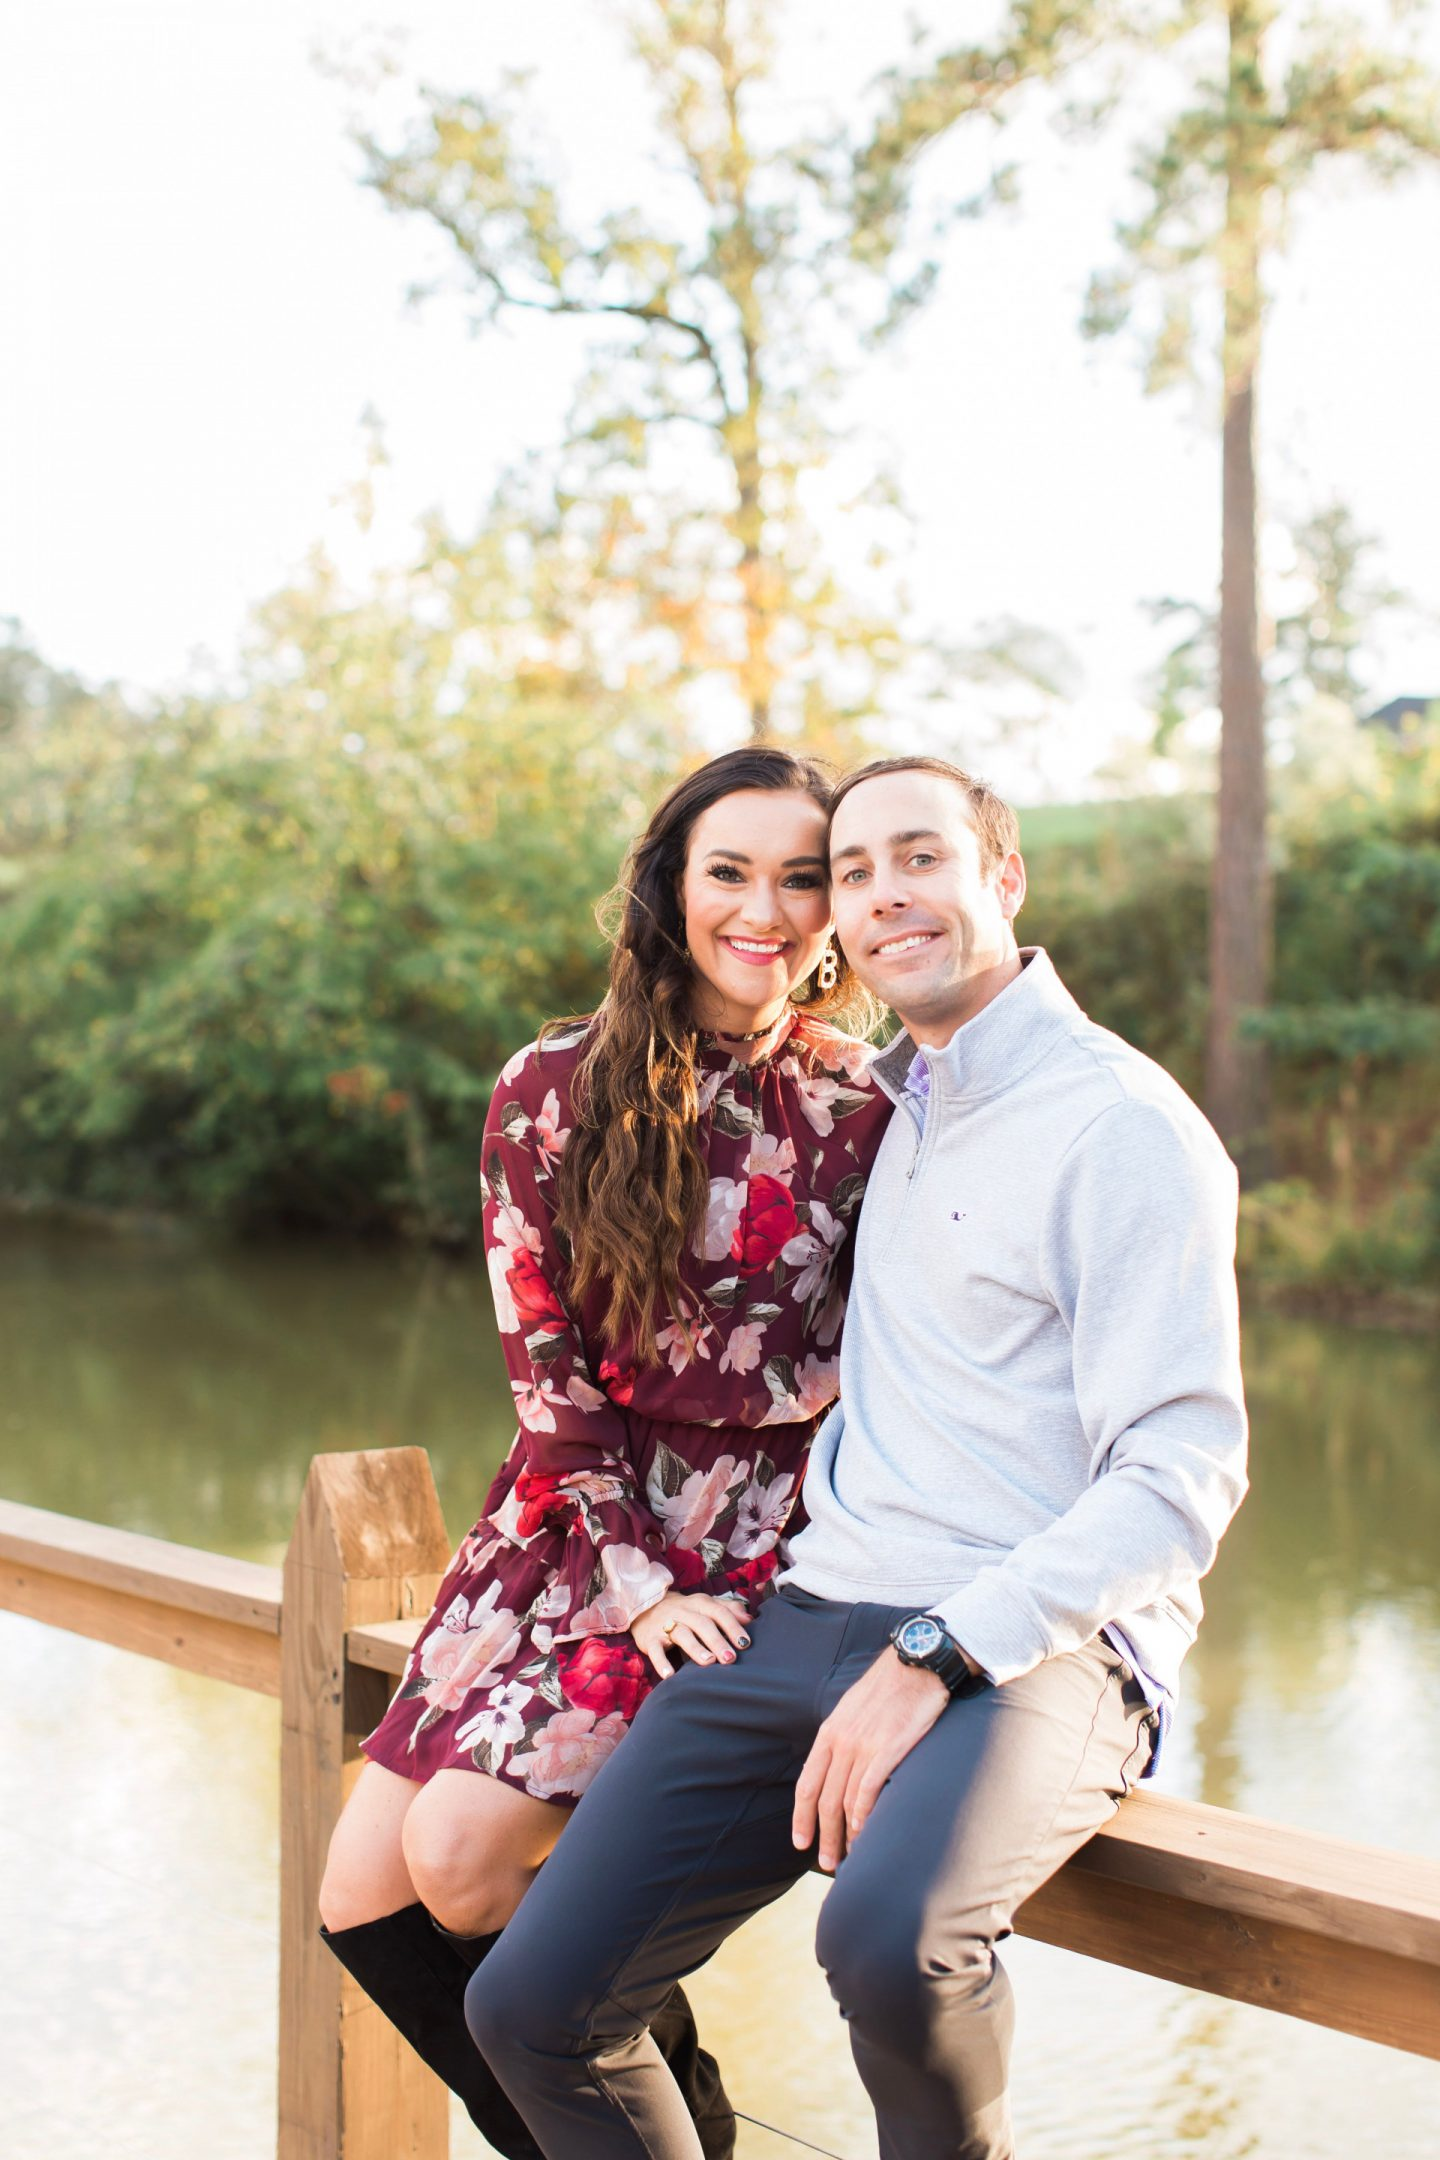 Our Engagement Story: A Valentine's Day Letter To Wife by Alabama Marriage + Family blogger, Heather Brown // My Life Well Loved